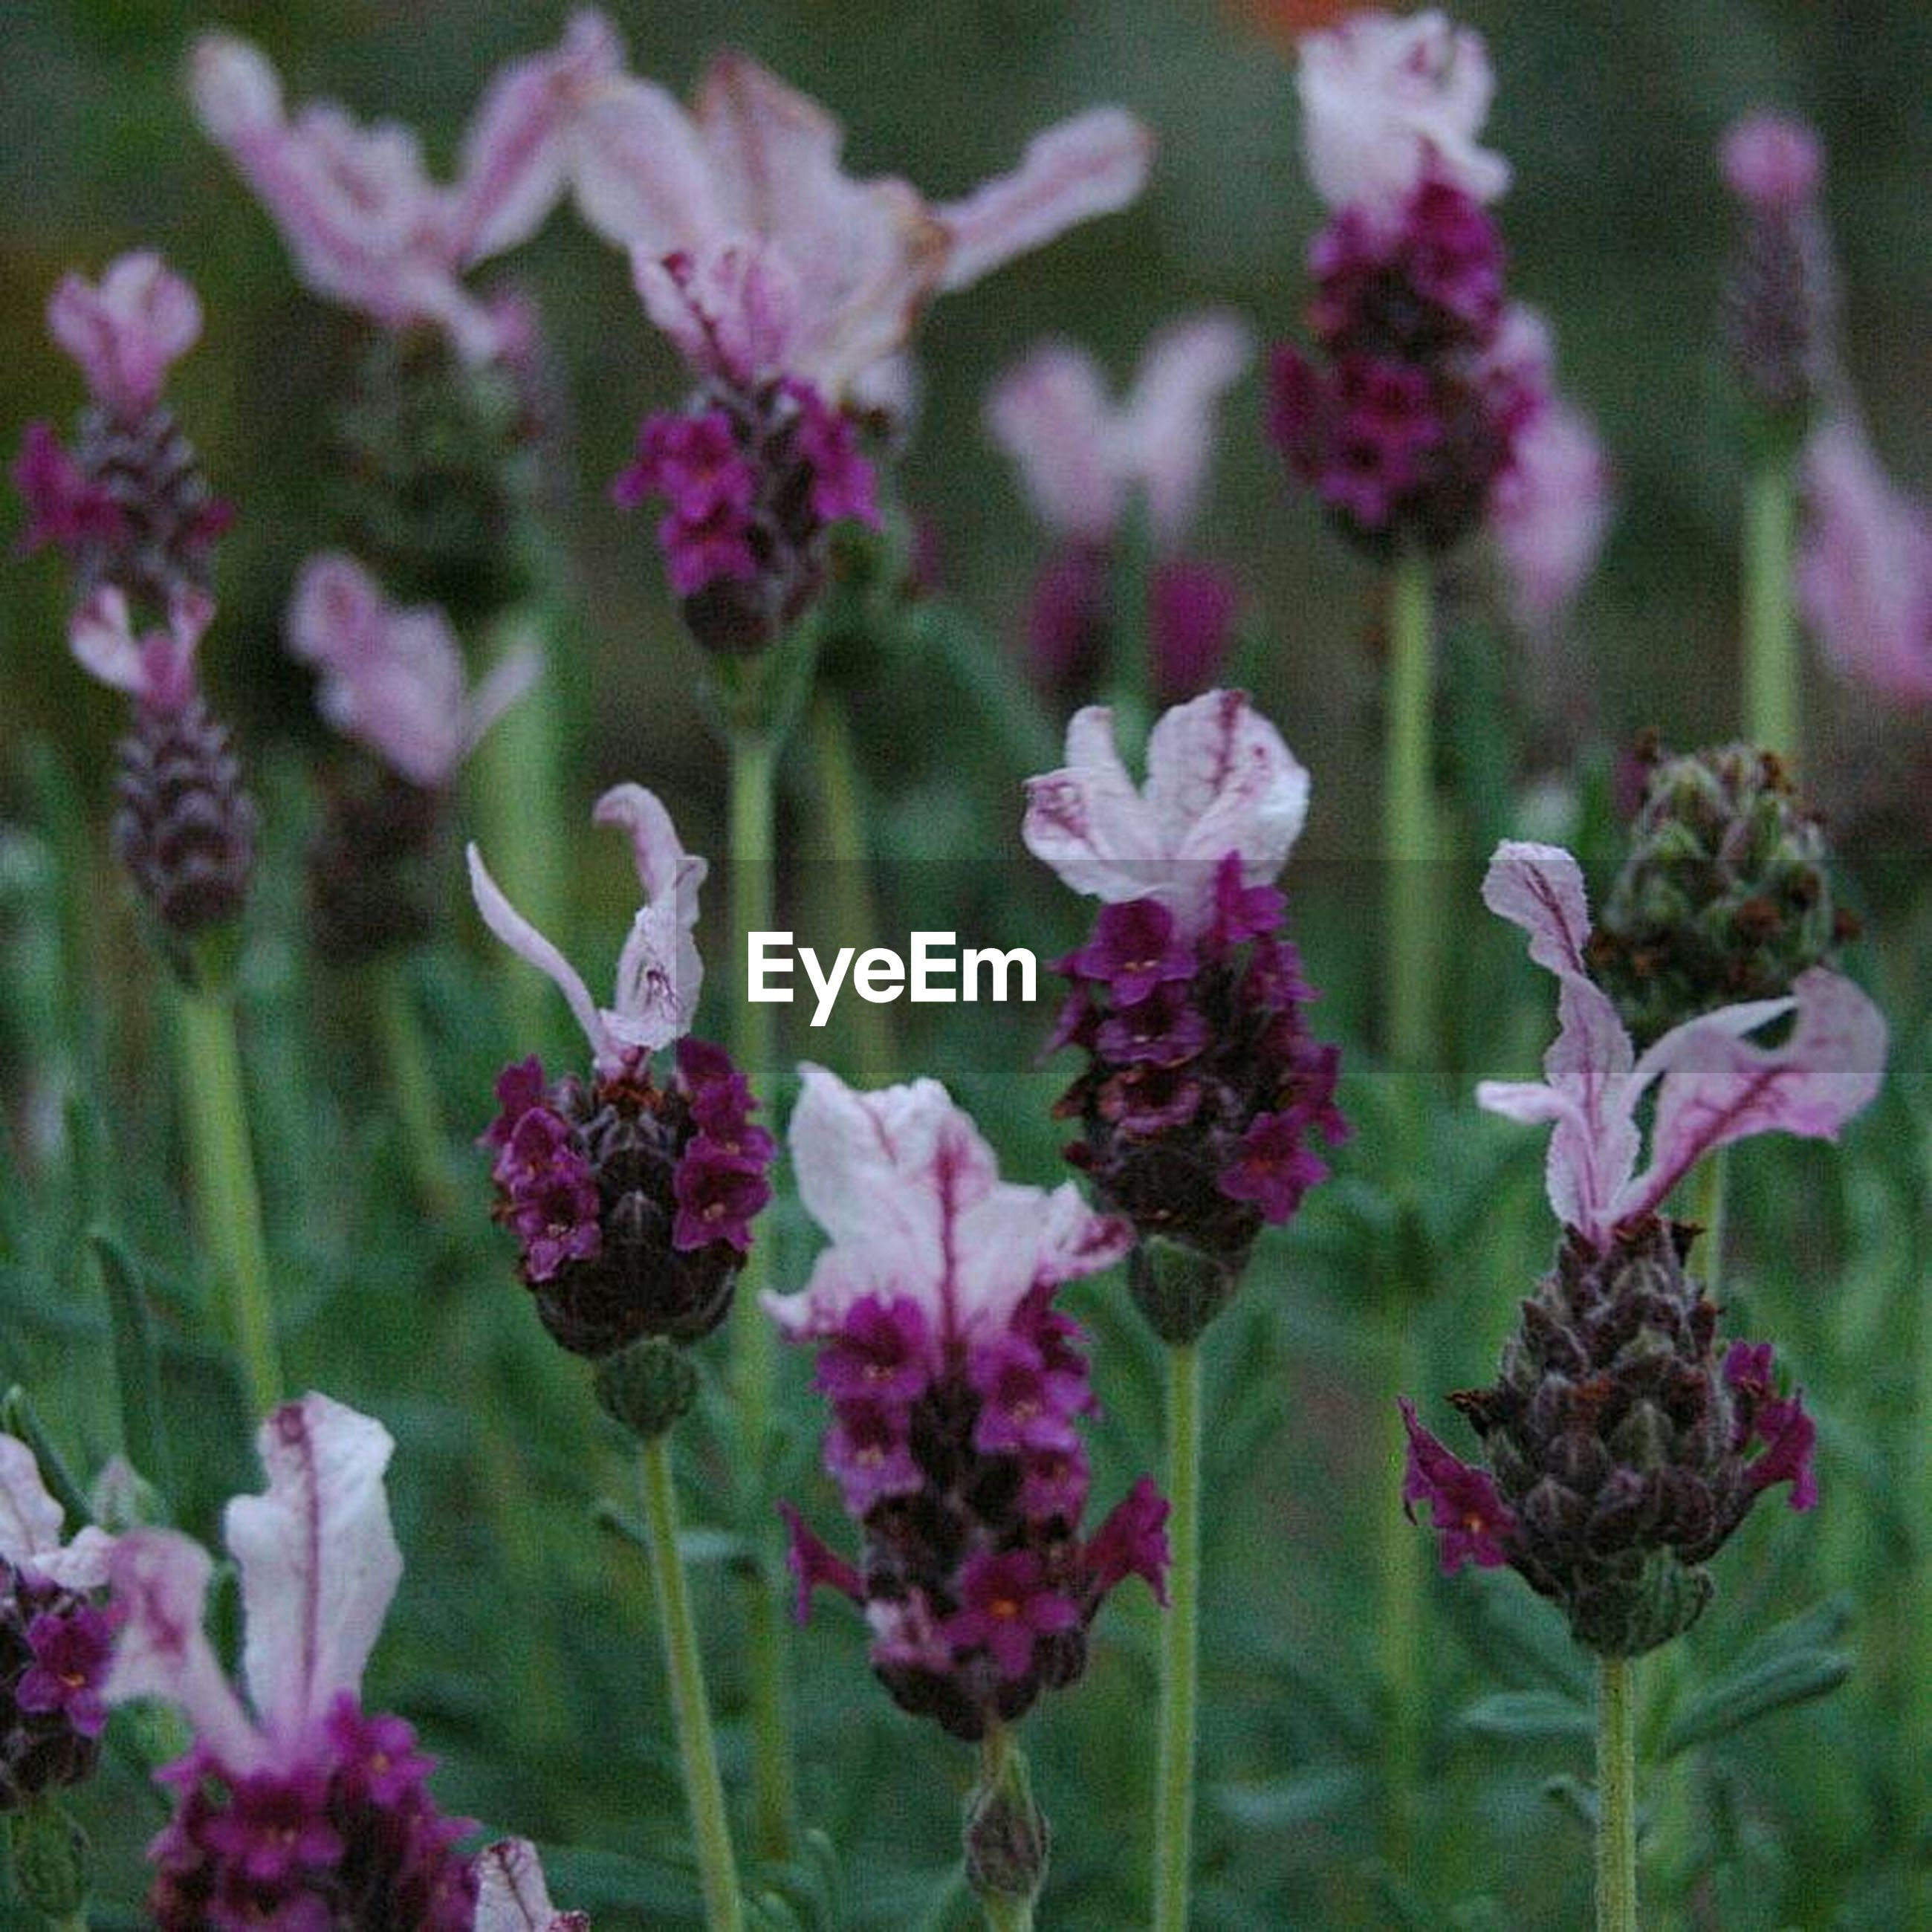 flower, freshness, growth, fragility, beauty in nature, plant, petal, pink color, nature, blooming, focus on foreground, stem, flower head, close-up, purple, in bloom, field, leaf, bud, outdoors